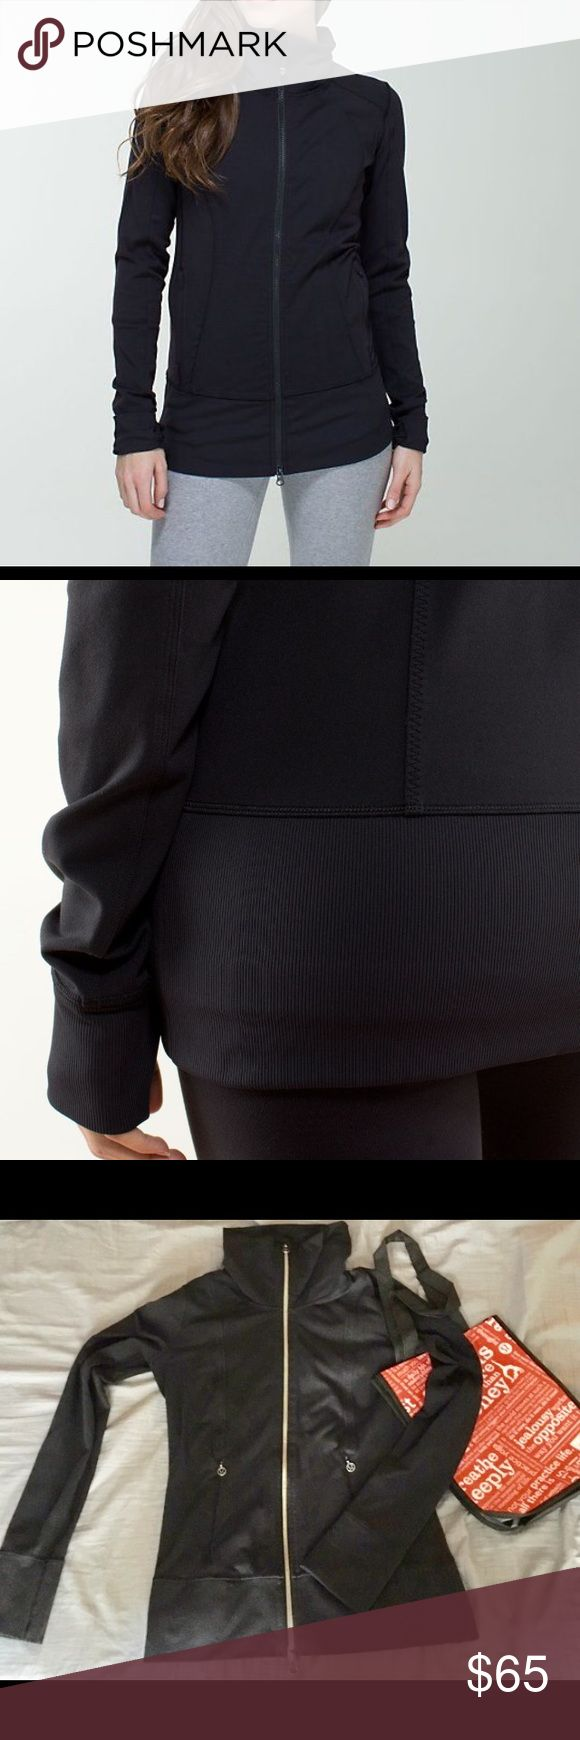 Lululemon Nice Asana Jacket Euc black with thumb holes; stock photos to show detail lululemon athletica Jackets & Coats